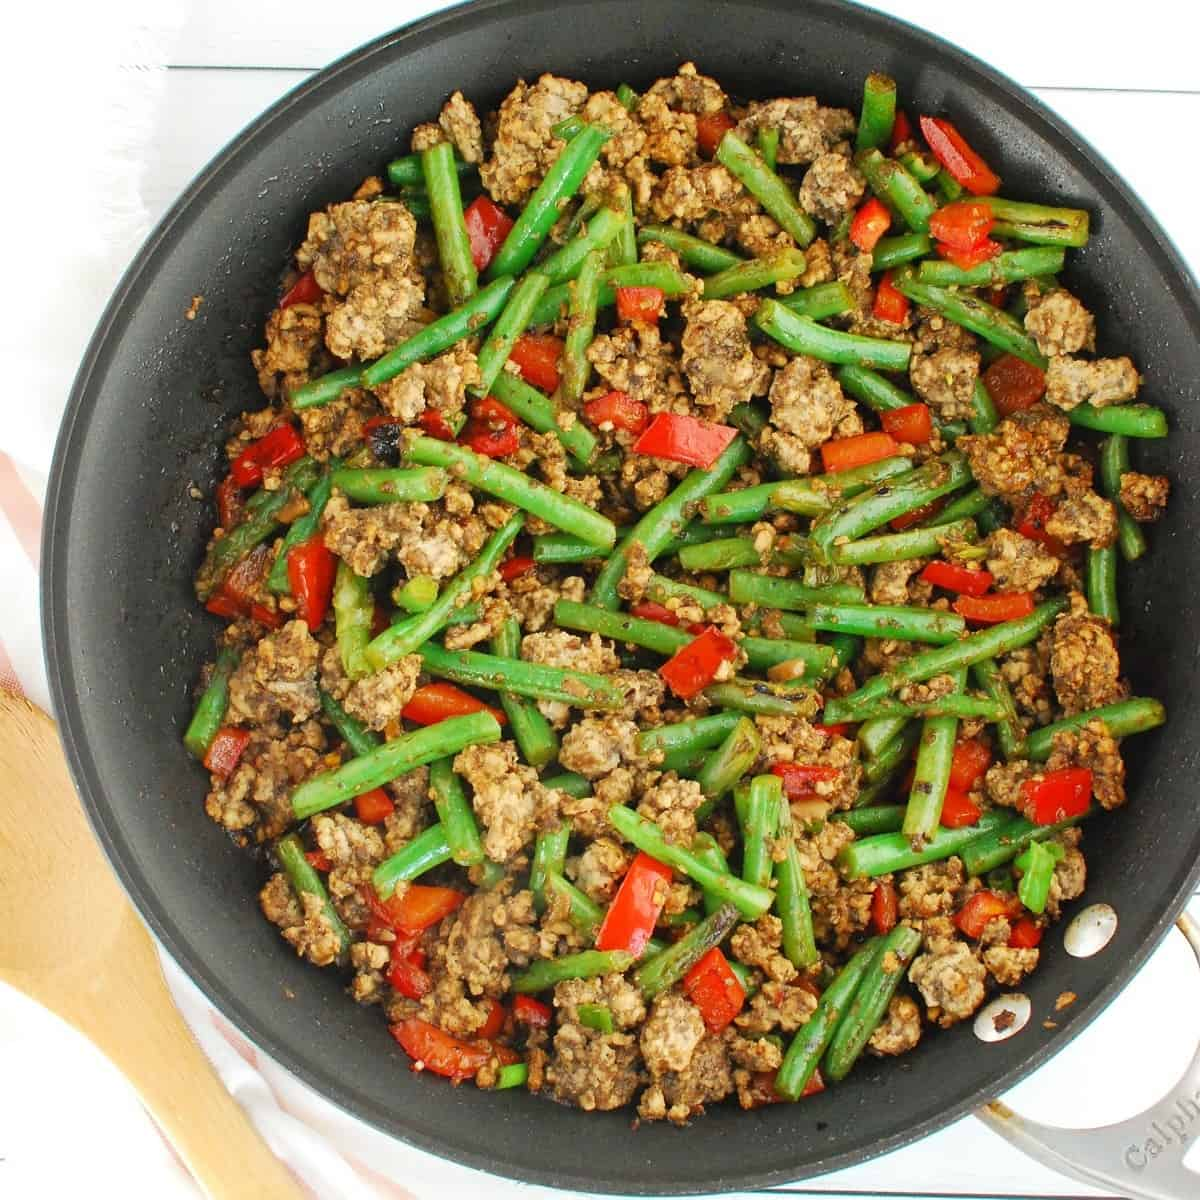 Ground pork stir fry in a large skillet.